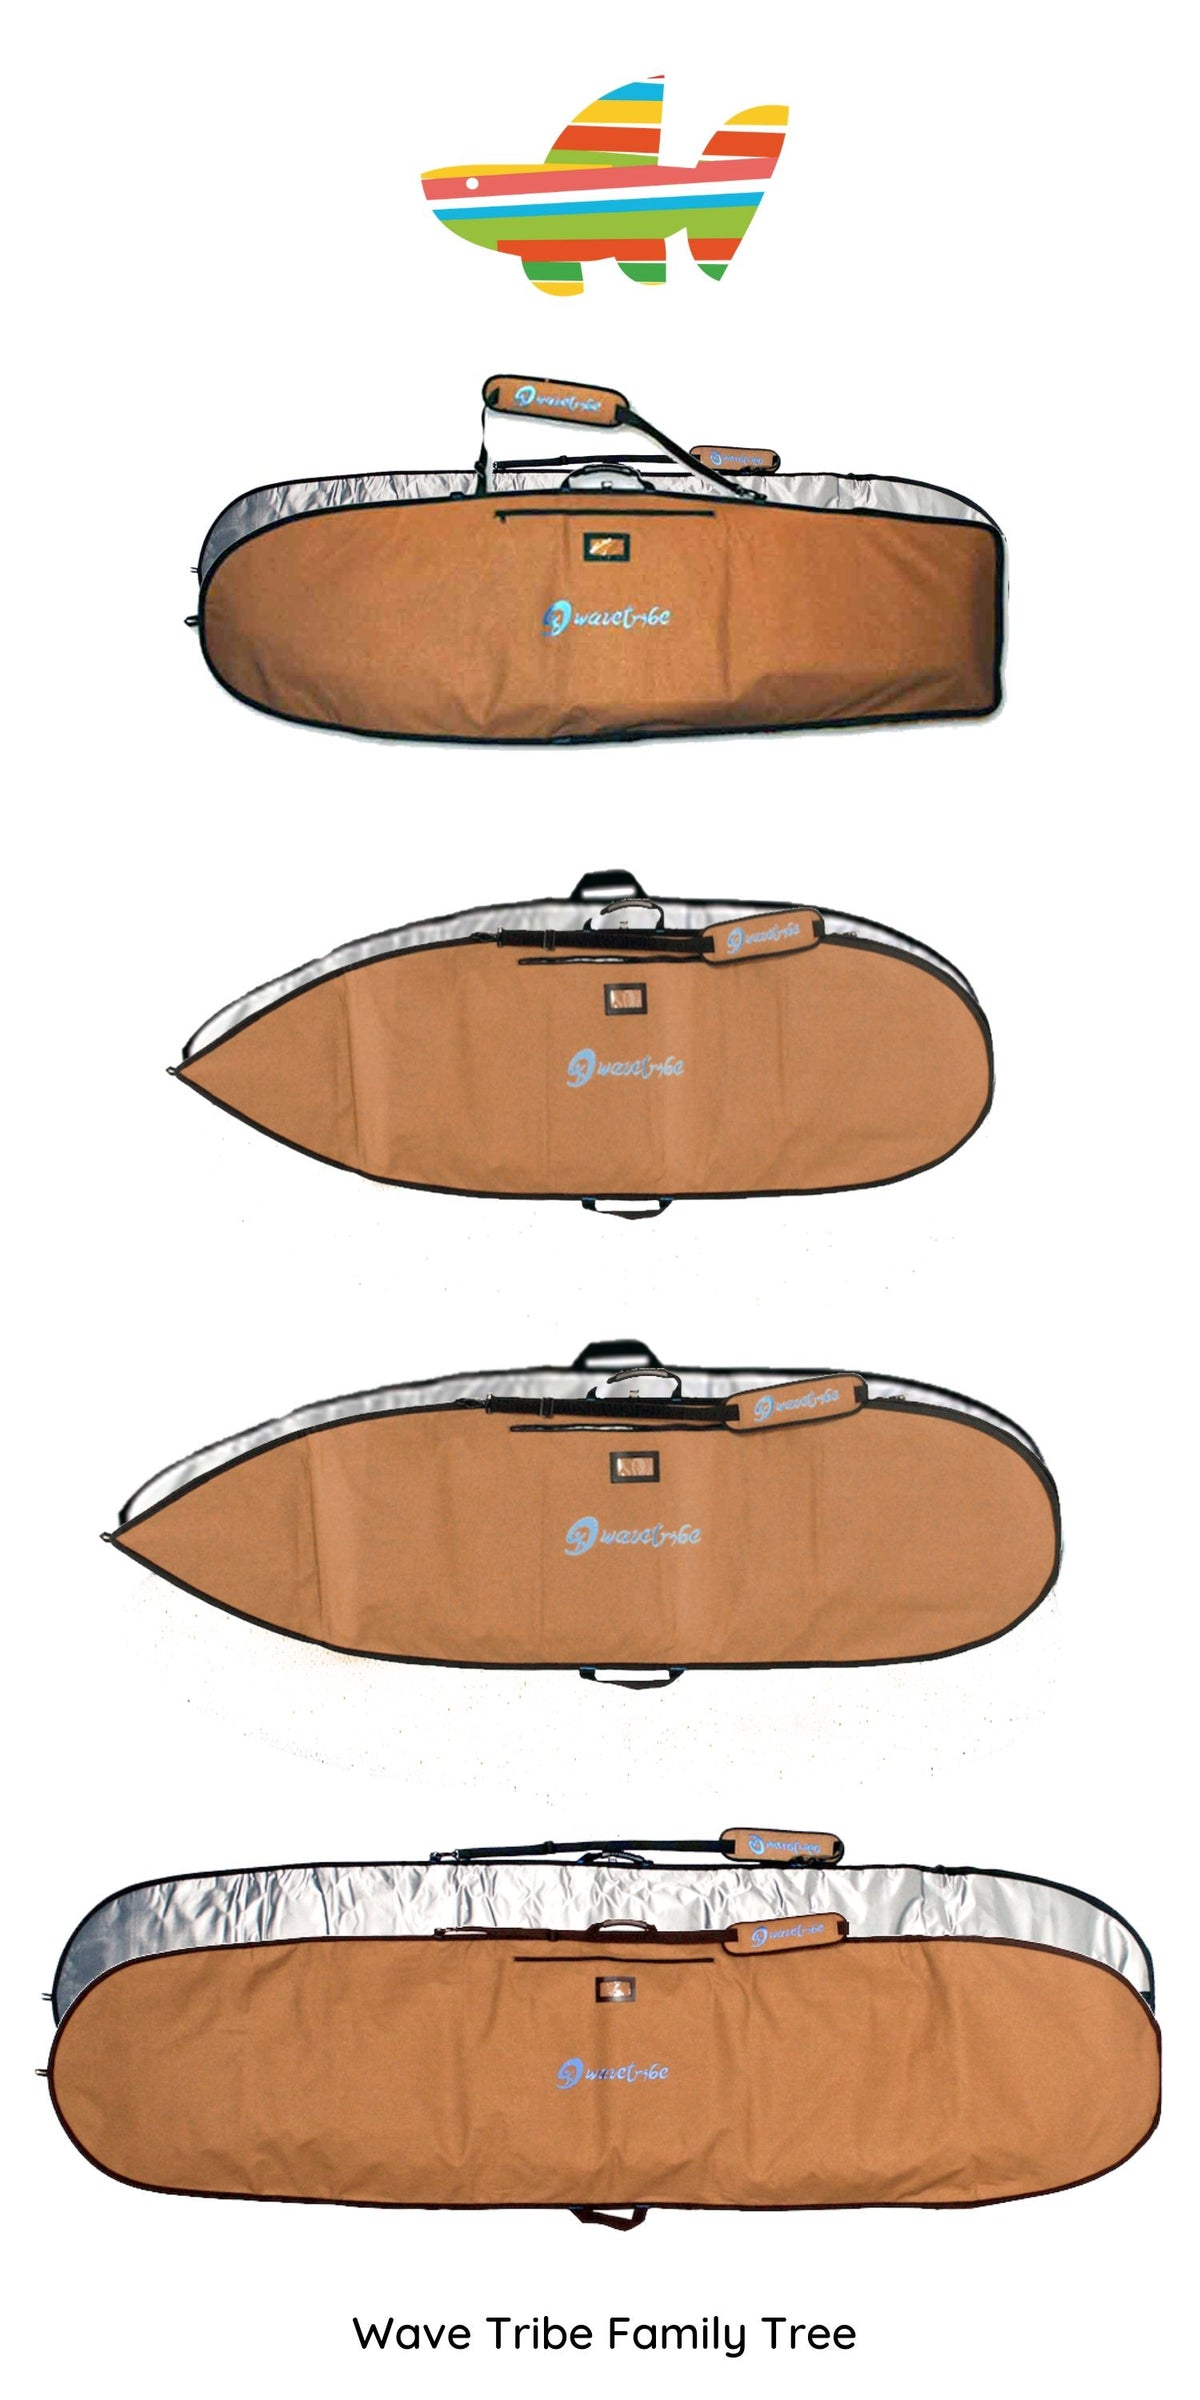 Wave Tribe Pioneer Day Boardbags